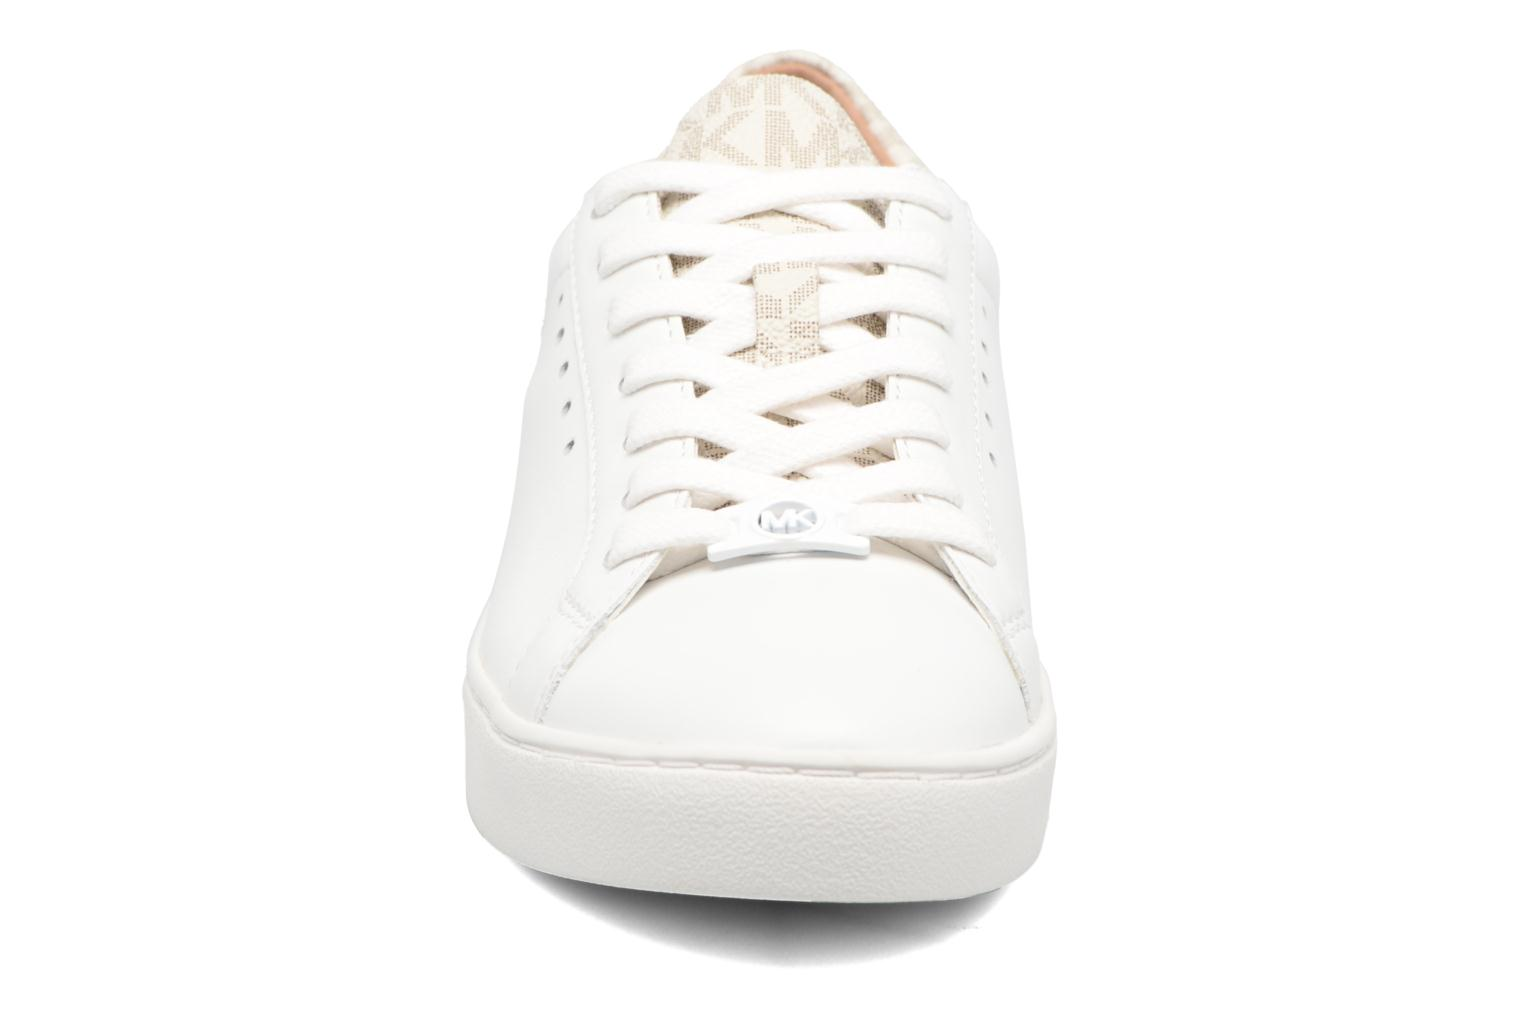 Irving lace up Op Wht/Van